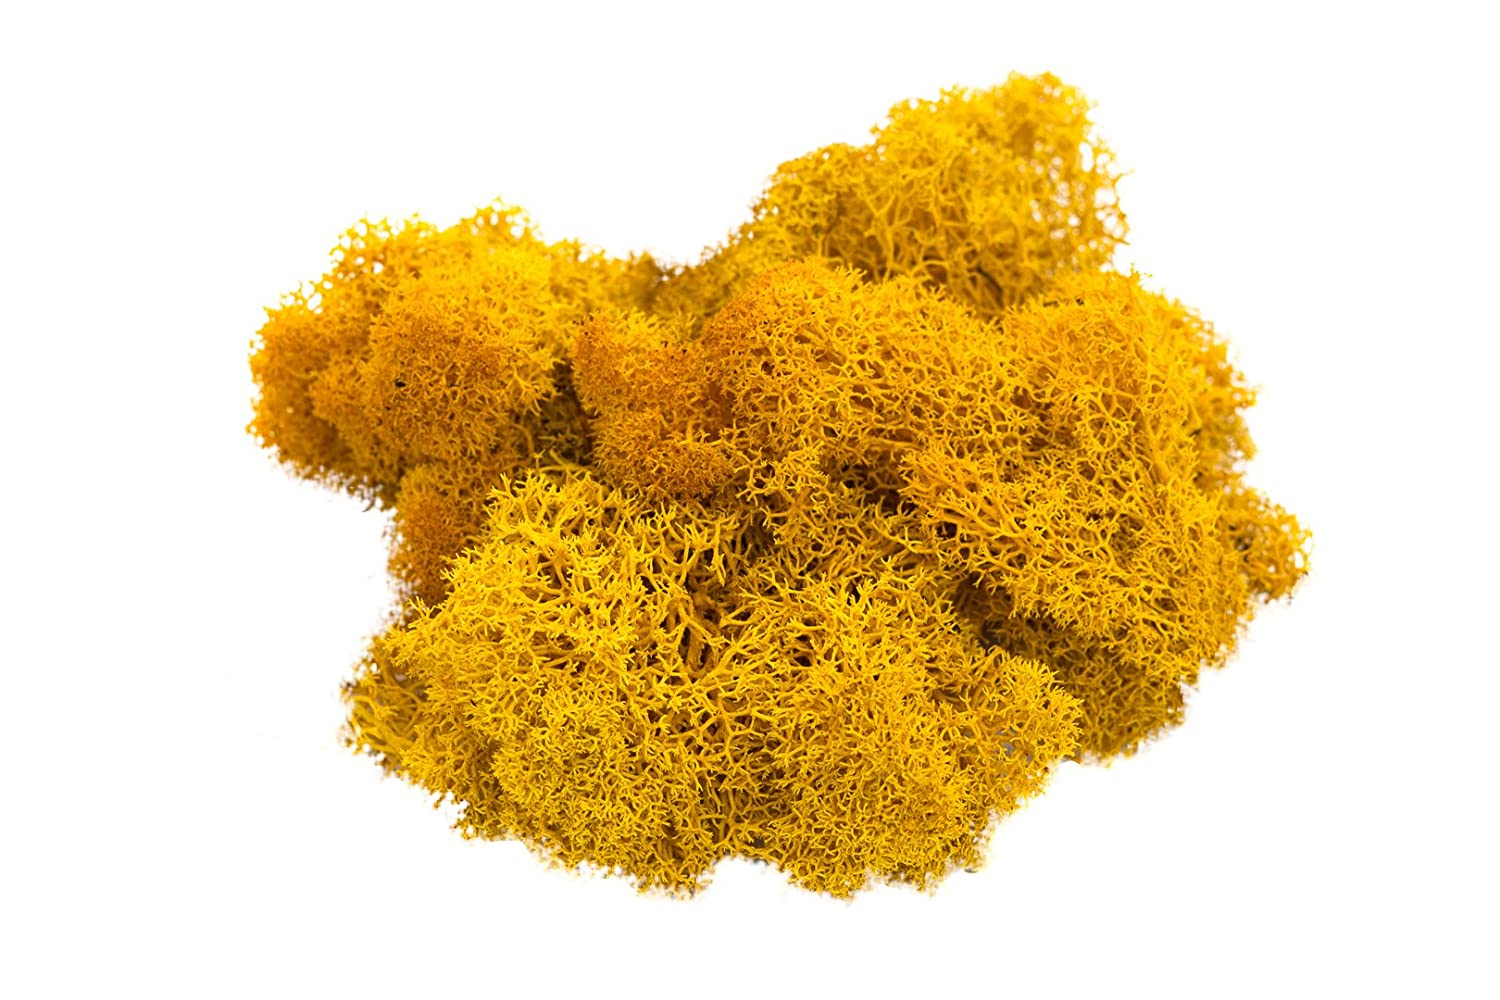 Reindeer Moss Preserved | Orange Moss | For Fairy Gardens, Terrariums, or any Craft or Floral Project | Nautical Crush Trading TM (2 Ounces) NCTS6631